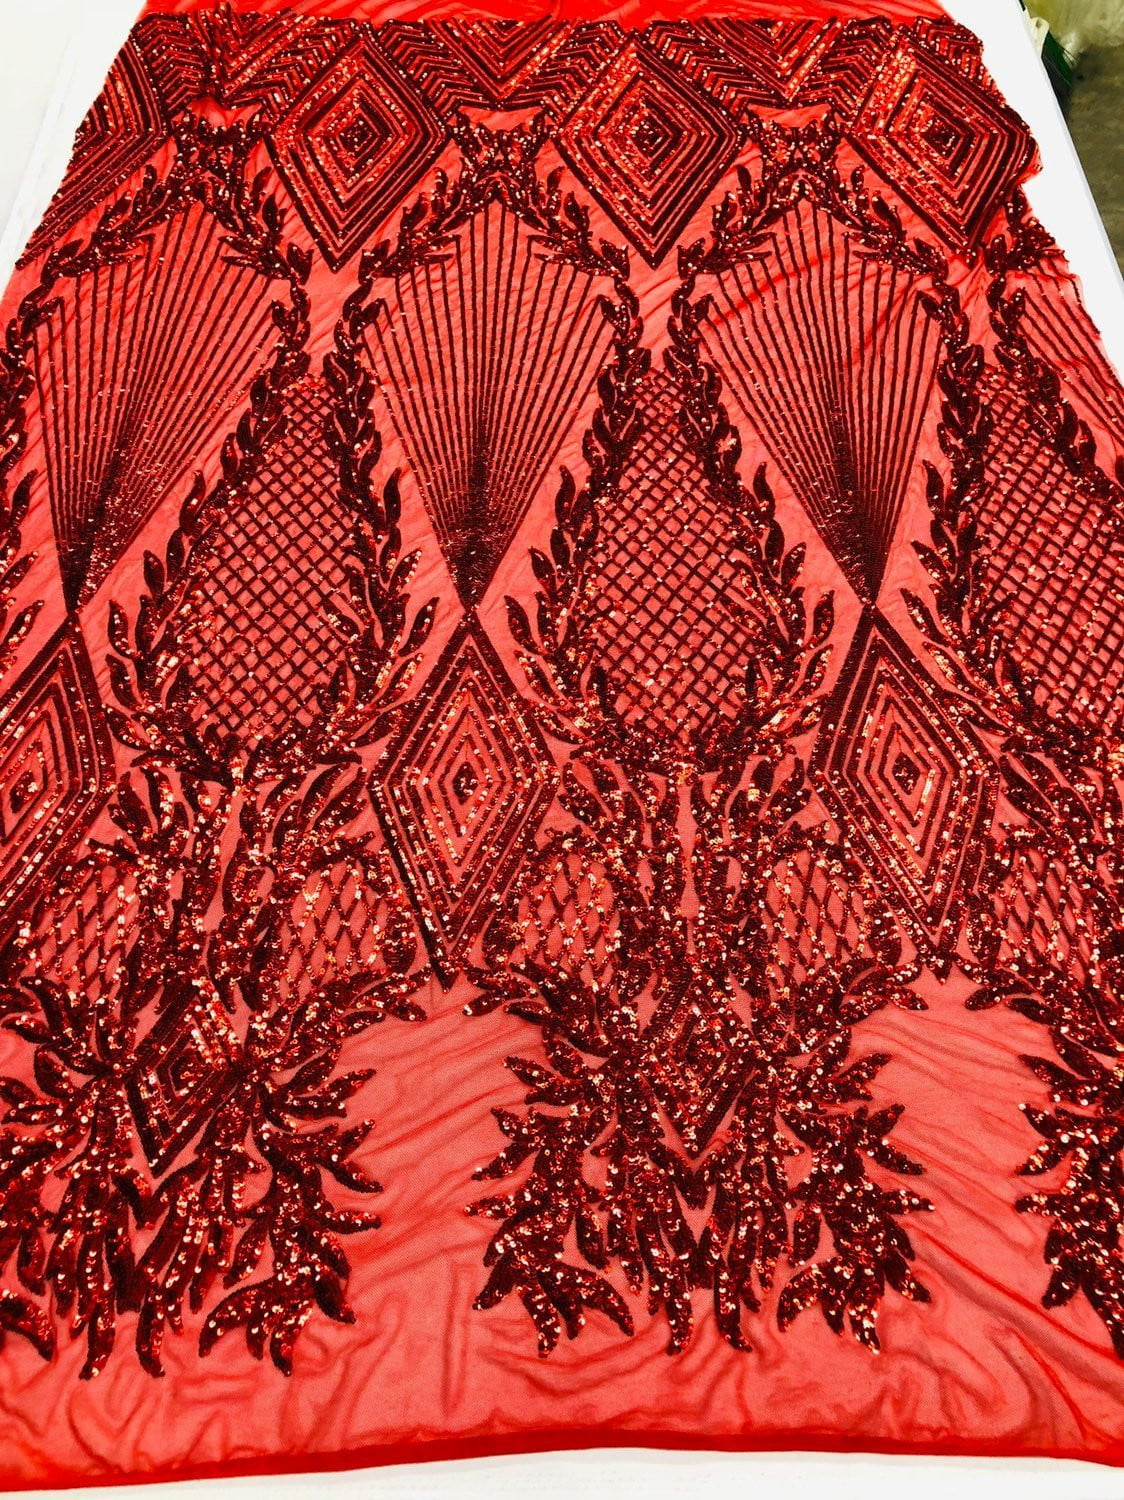 Red Sequins Fabric 4 Way Stretch Embroidered A Mesh Lace Fabric By The Yard